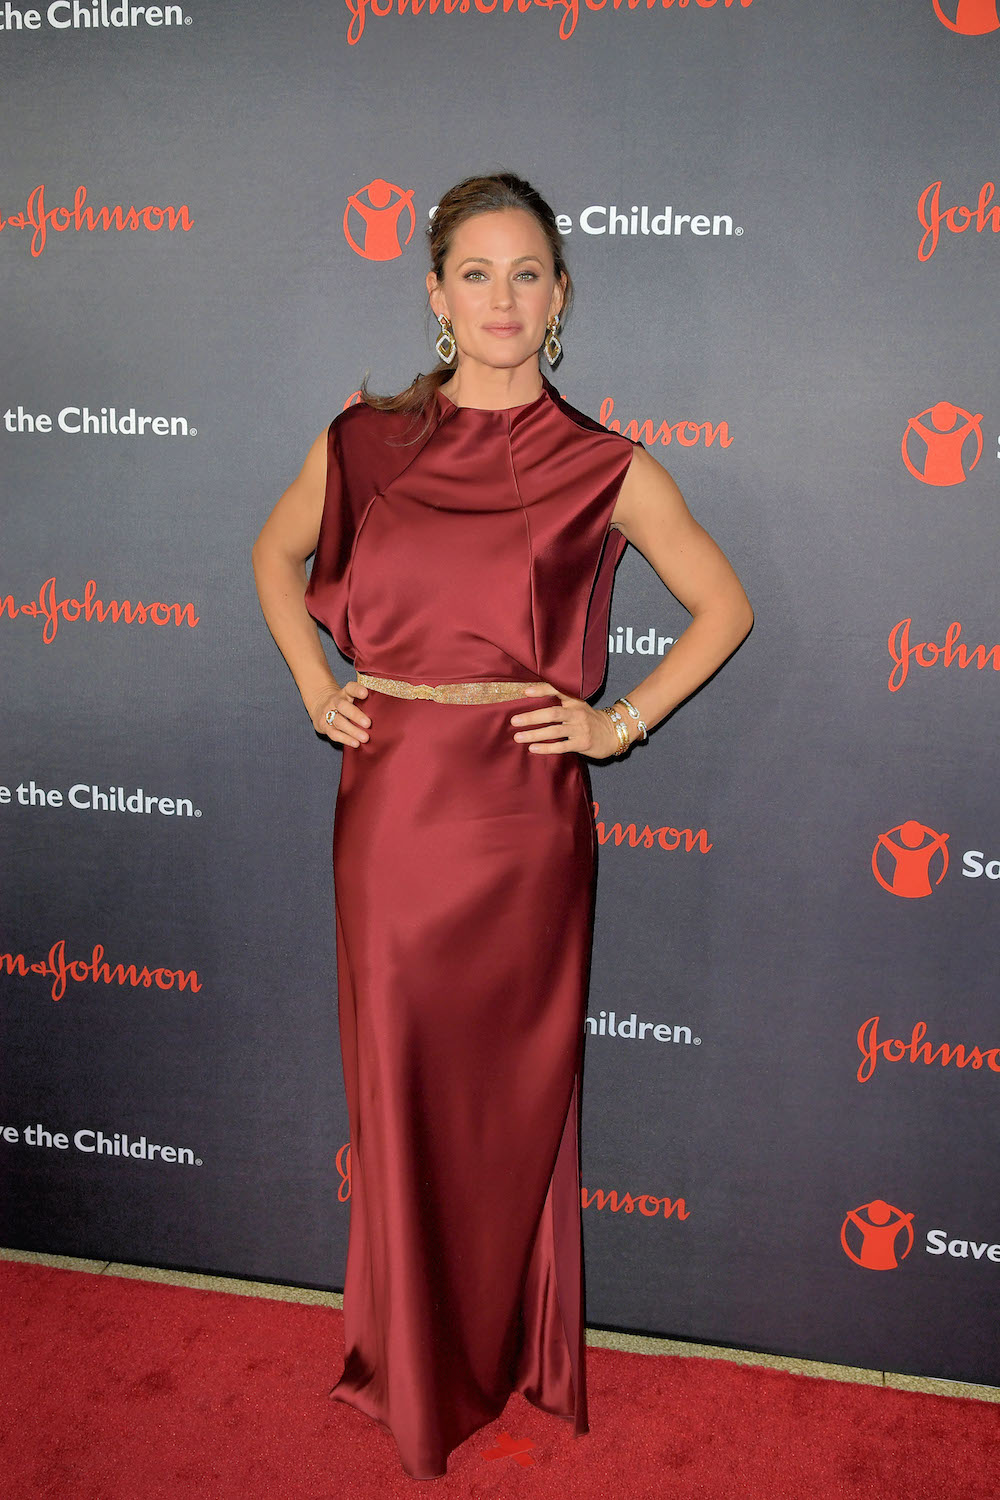 dc29d0af5656 Jennifer Garner s Maroon Dress Is the Glam Winter Look We All Need–Get the  Look